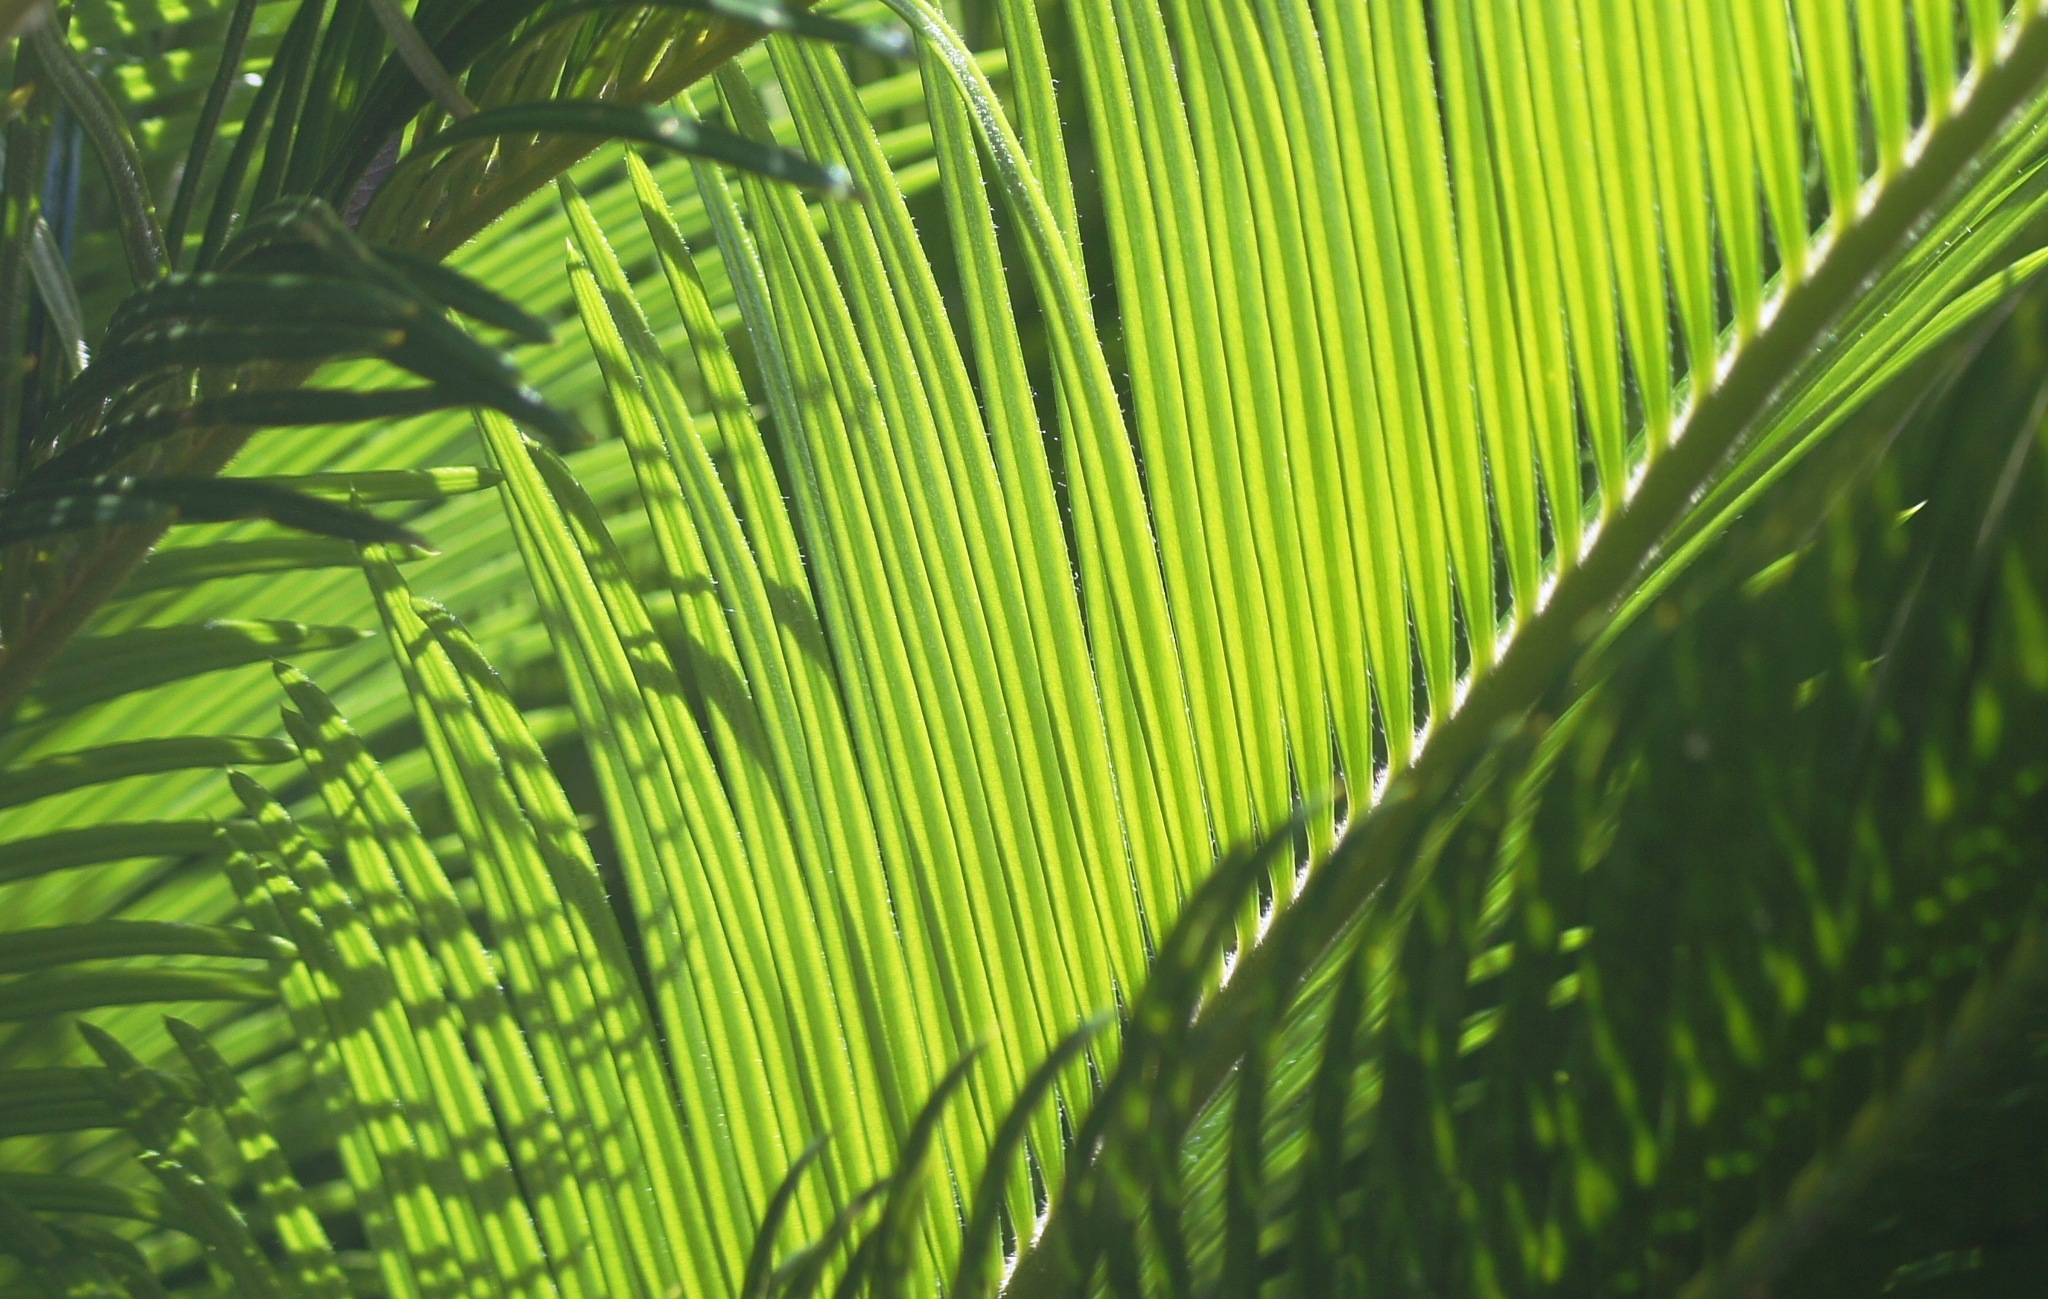 Sago Palm by MichaelDorsey